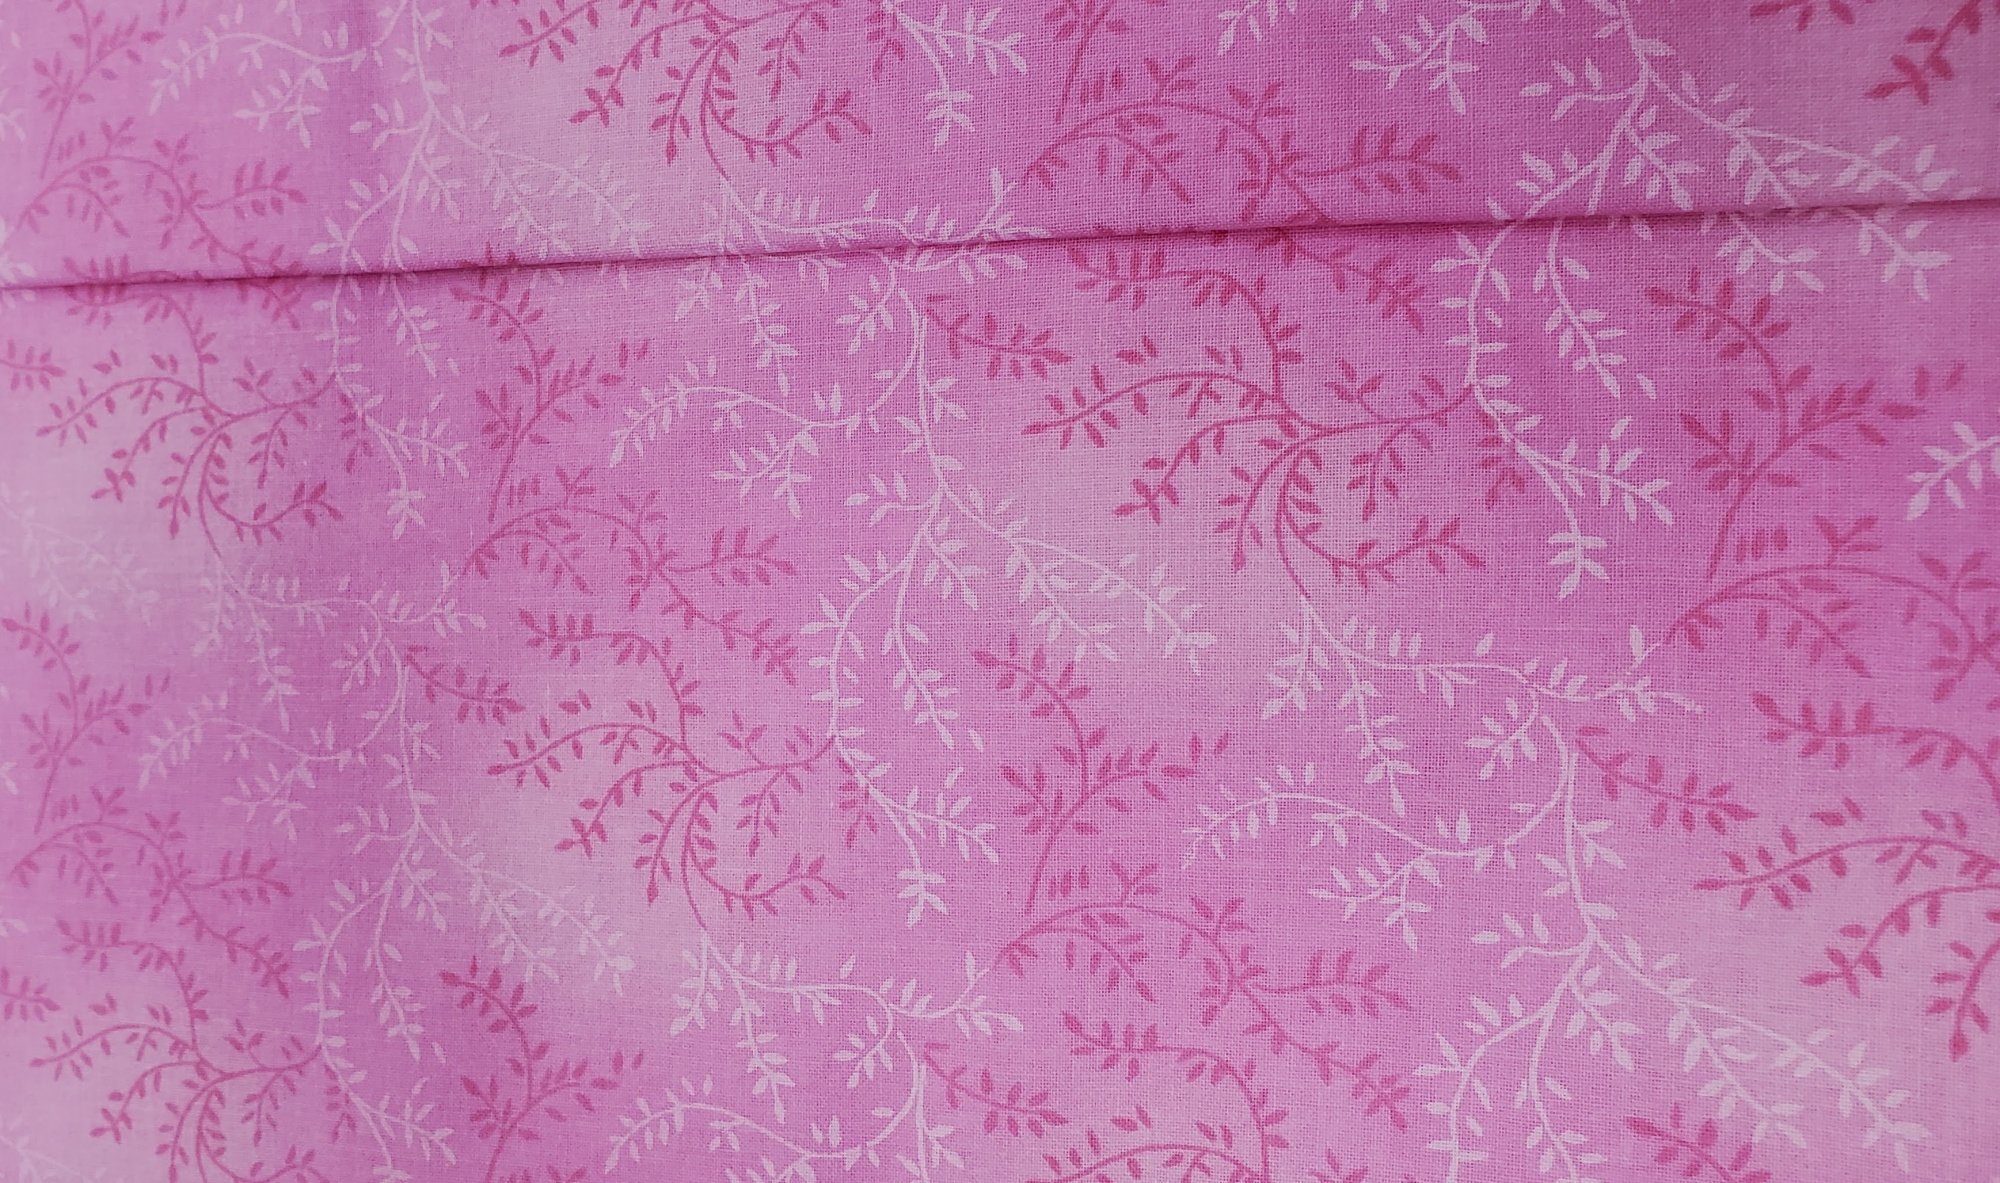 3 Yard Backing Piece: 108 Wide Pink Variegated Branches in a single 3 yard piece